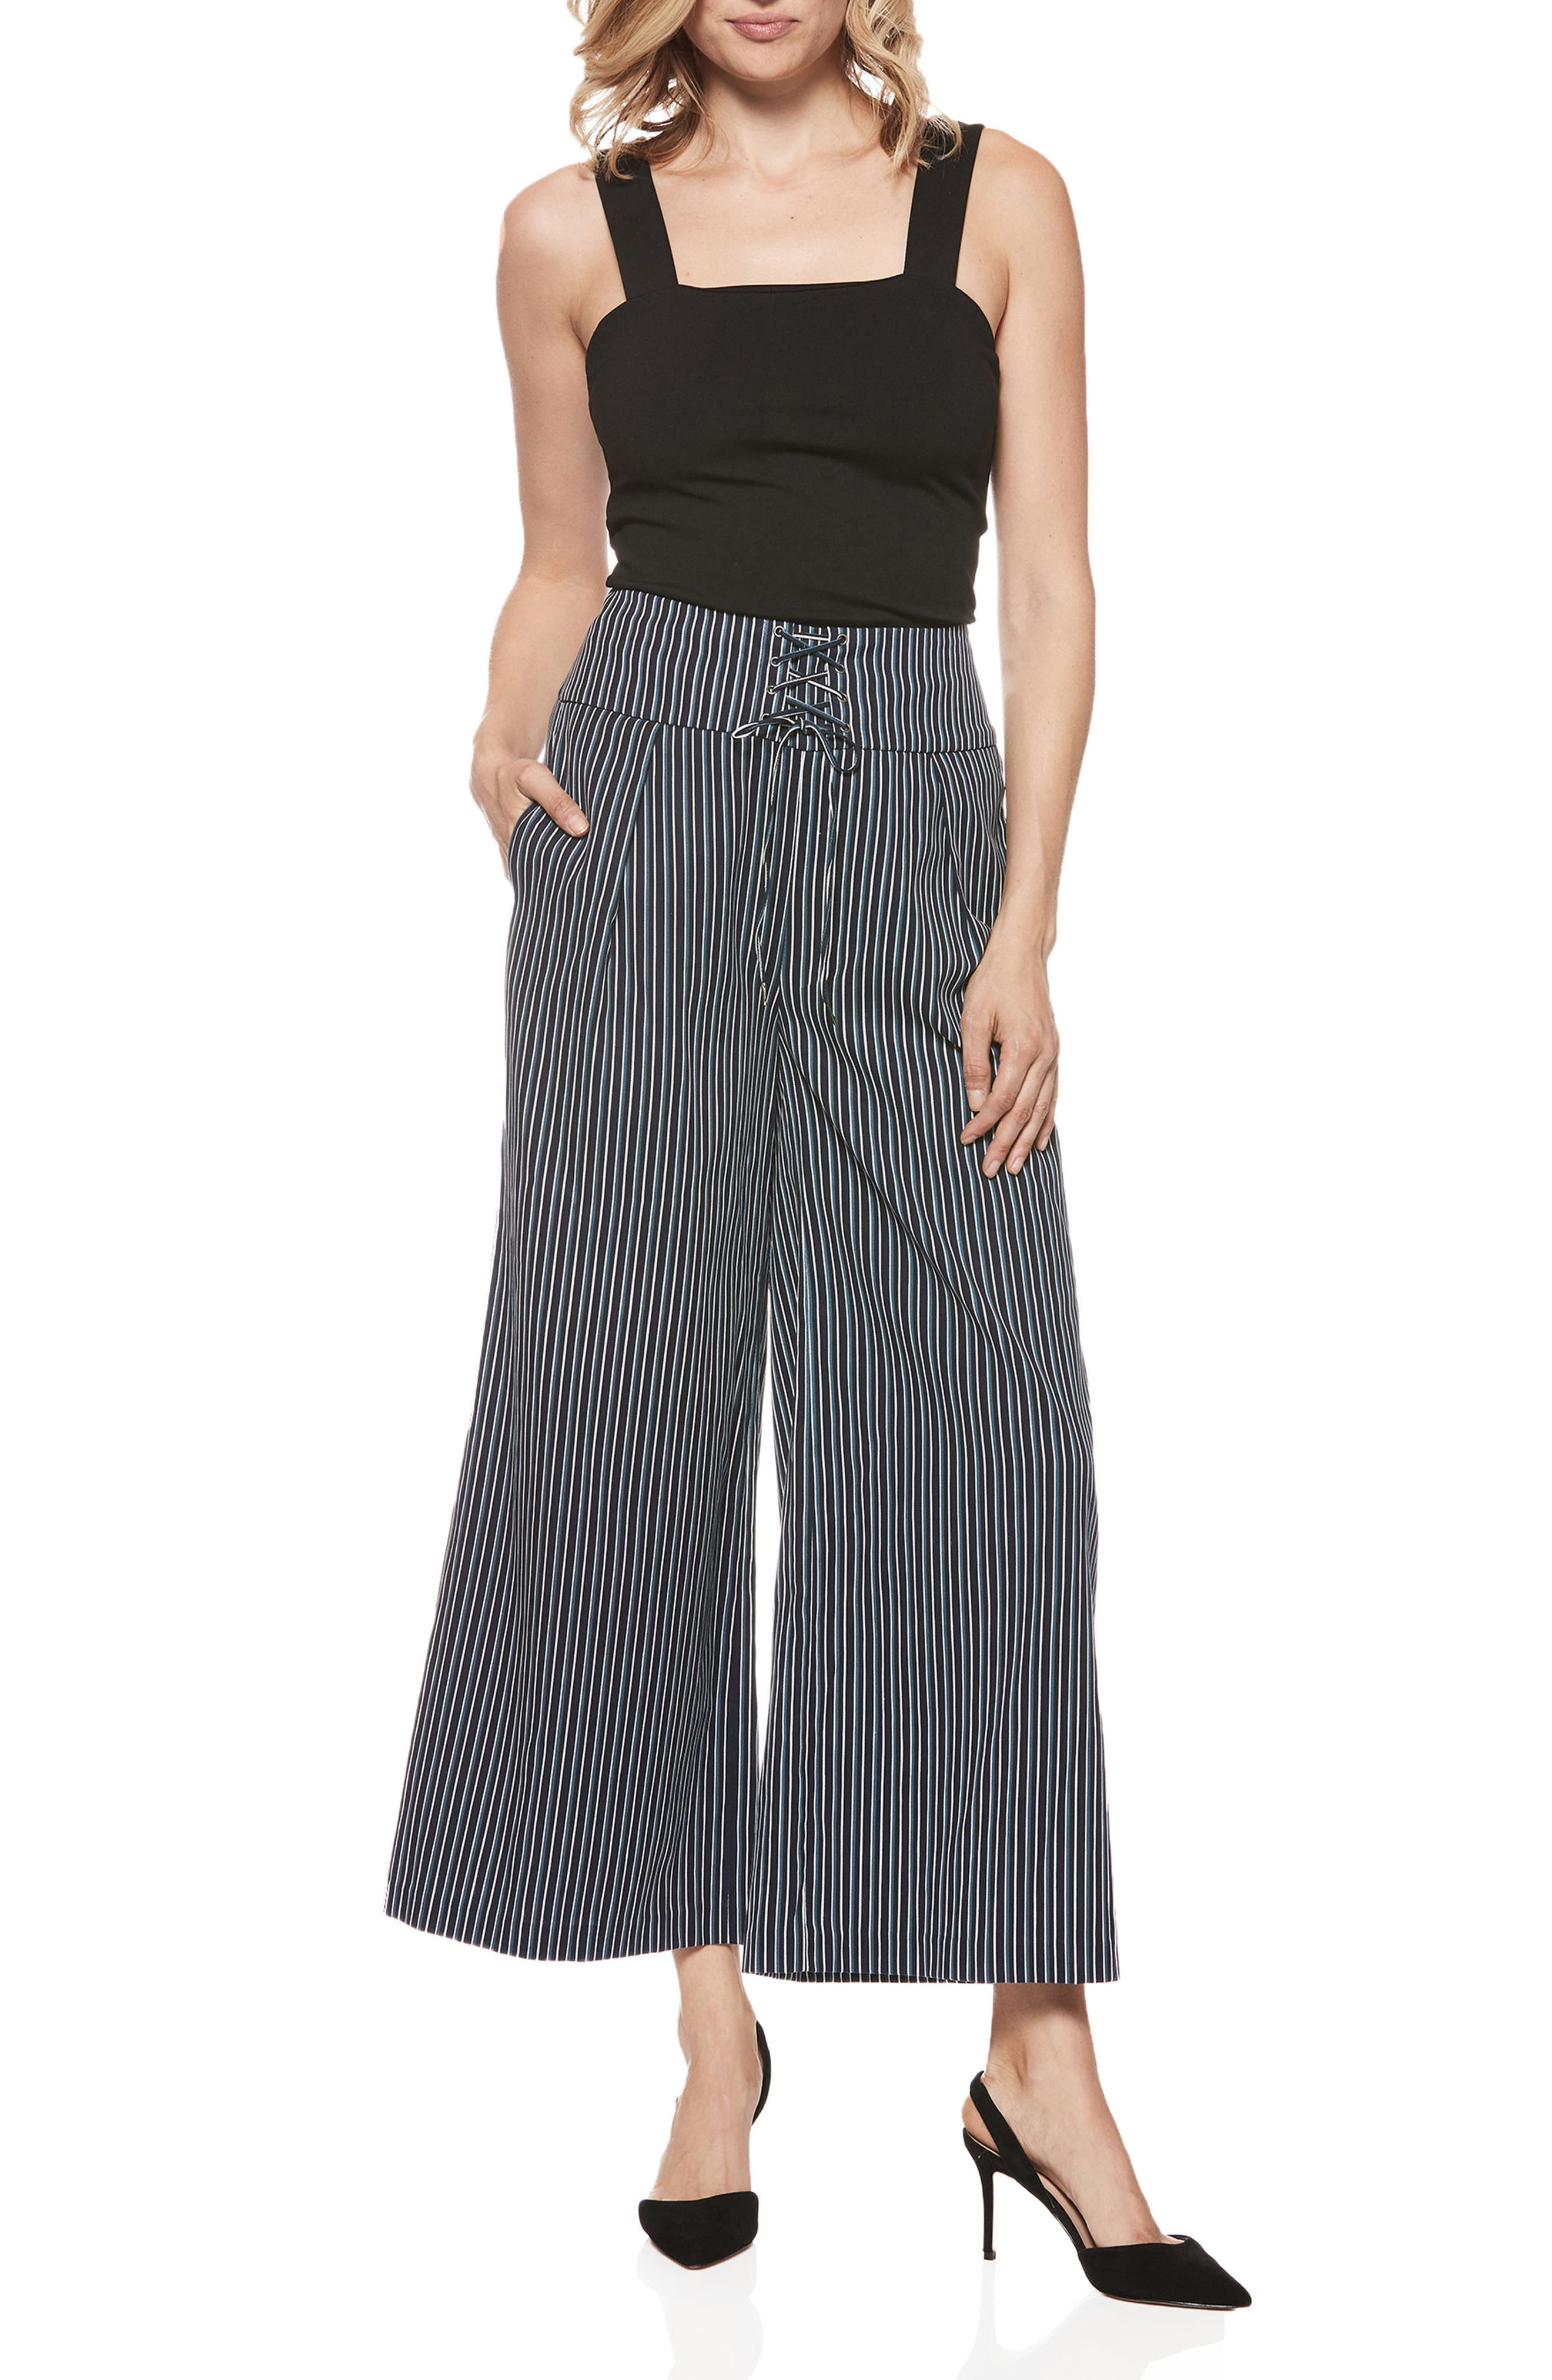 Charisma Pants,                             Alternate thumbnail 3, color,                             Rich Navy Multi